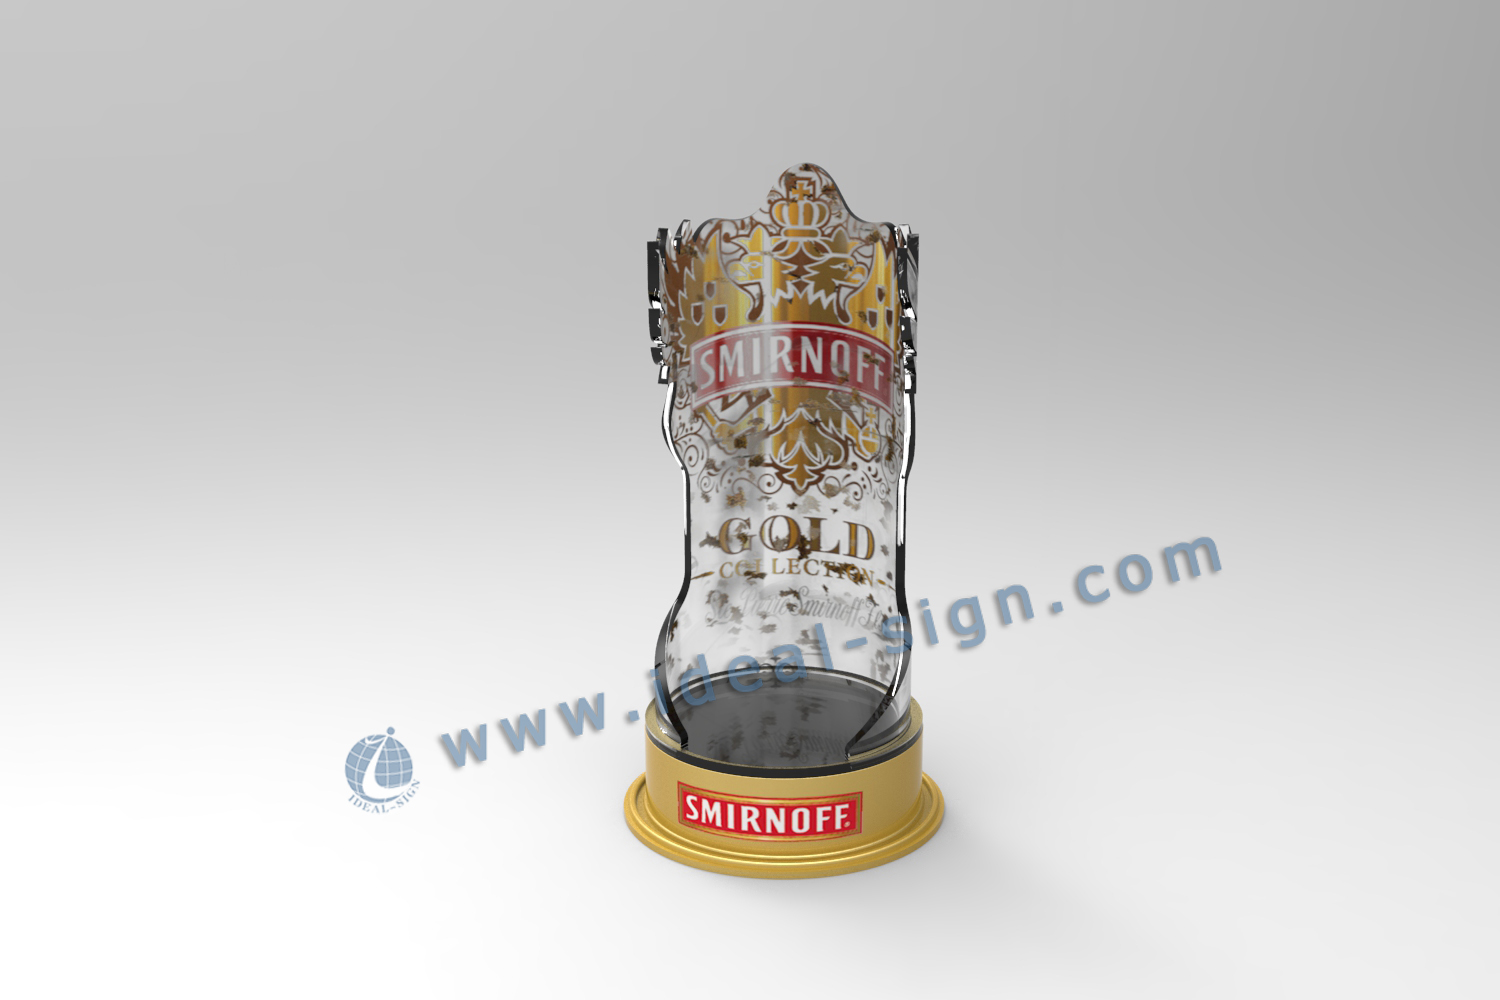 SMIRNOFF LED acrylic bottle stand